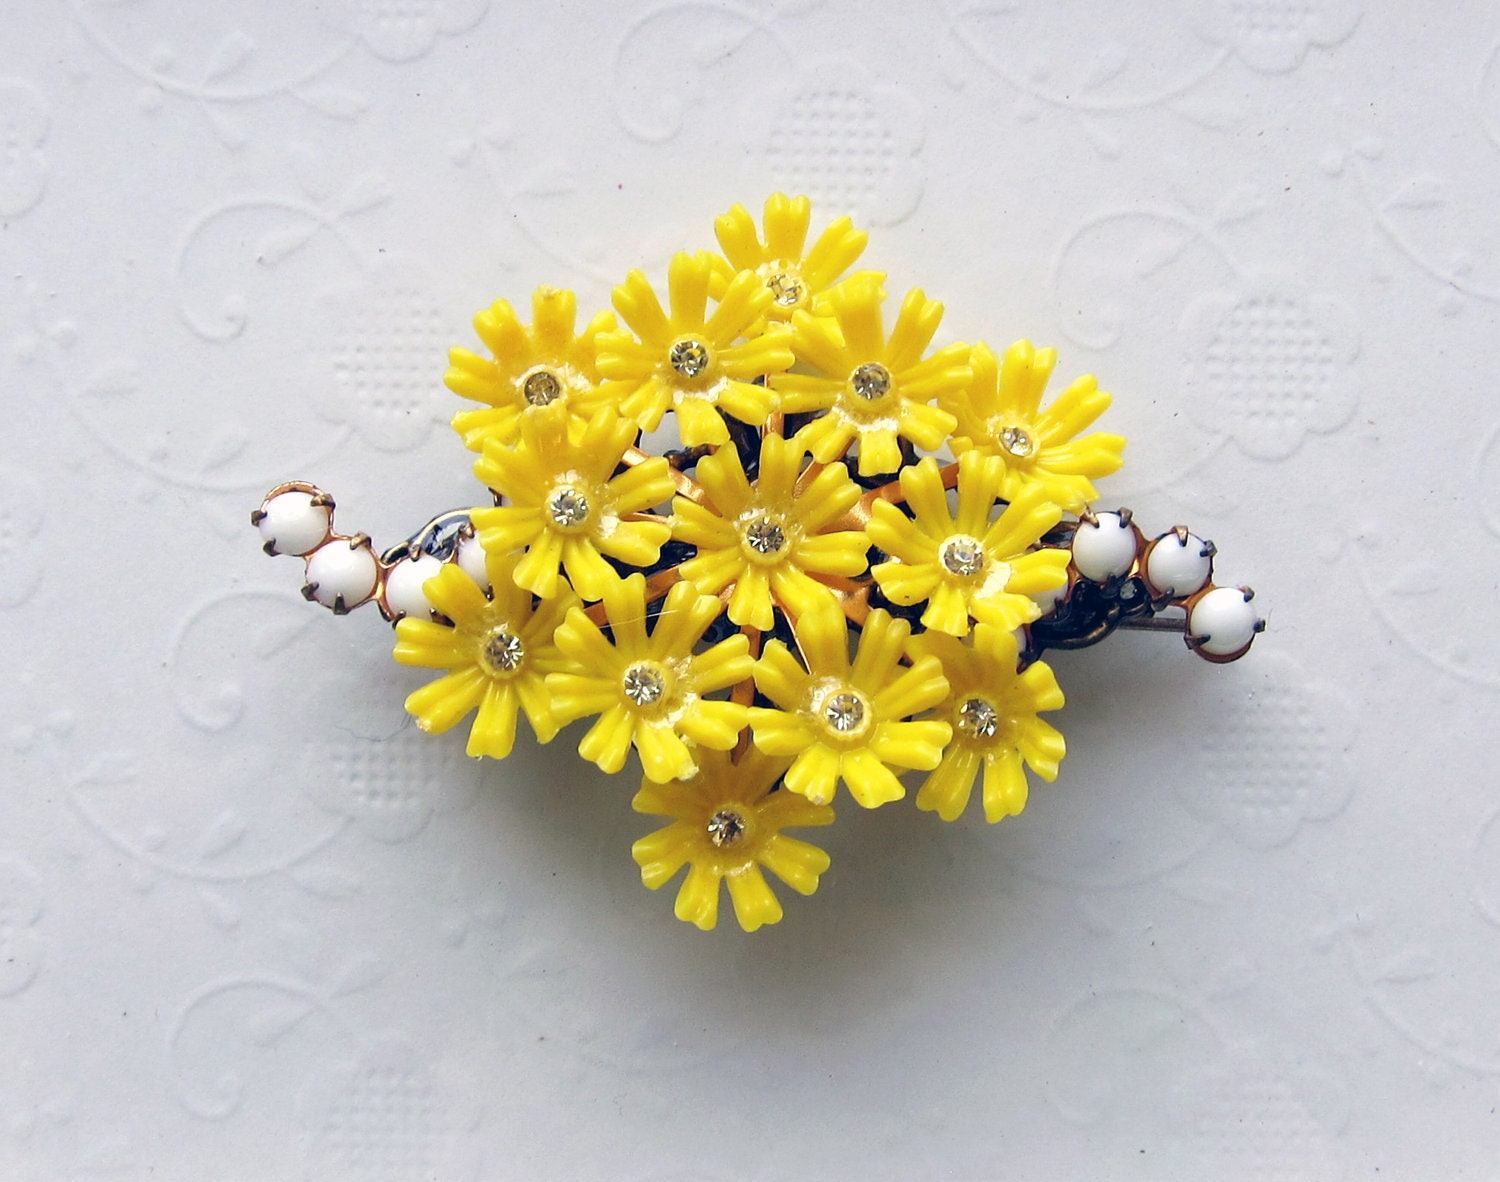 Bright Sunny Yellow Vintage Plastic Flower Rhinestone Cluster Collage Hair Barrette,  Vintage Yellow Flower Hair Accessories - CheshireCatJewelry